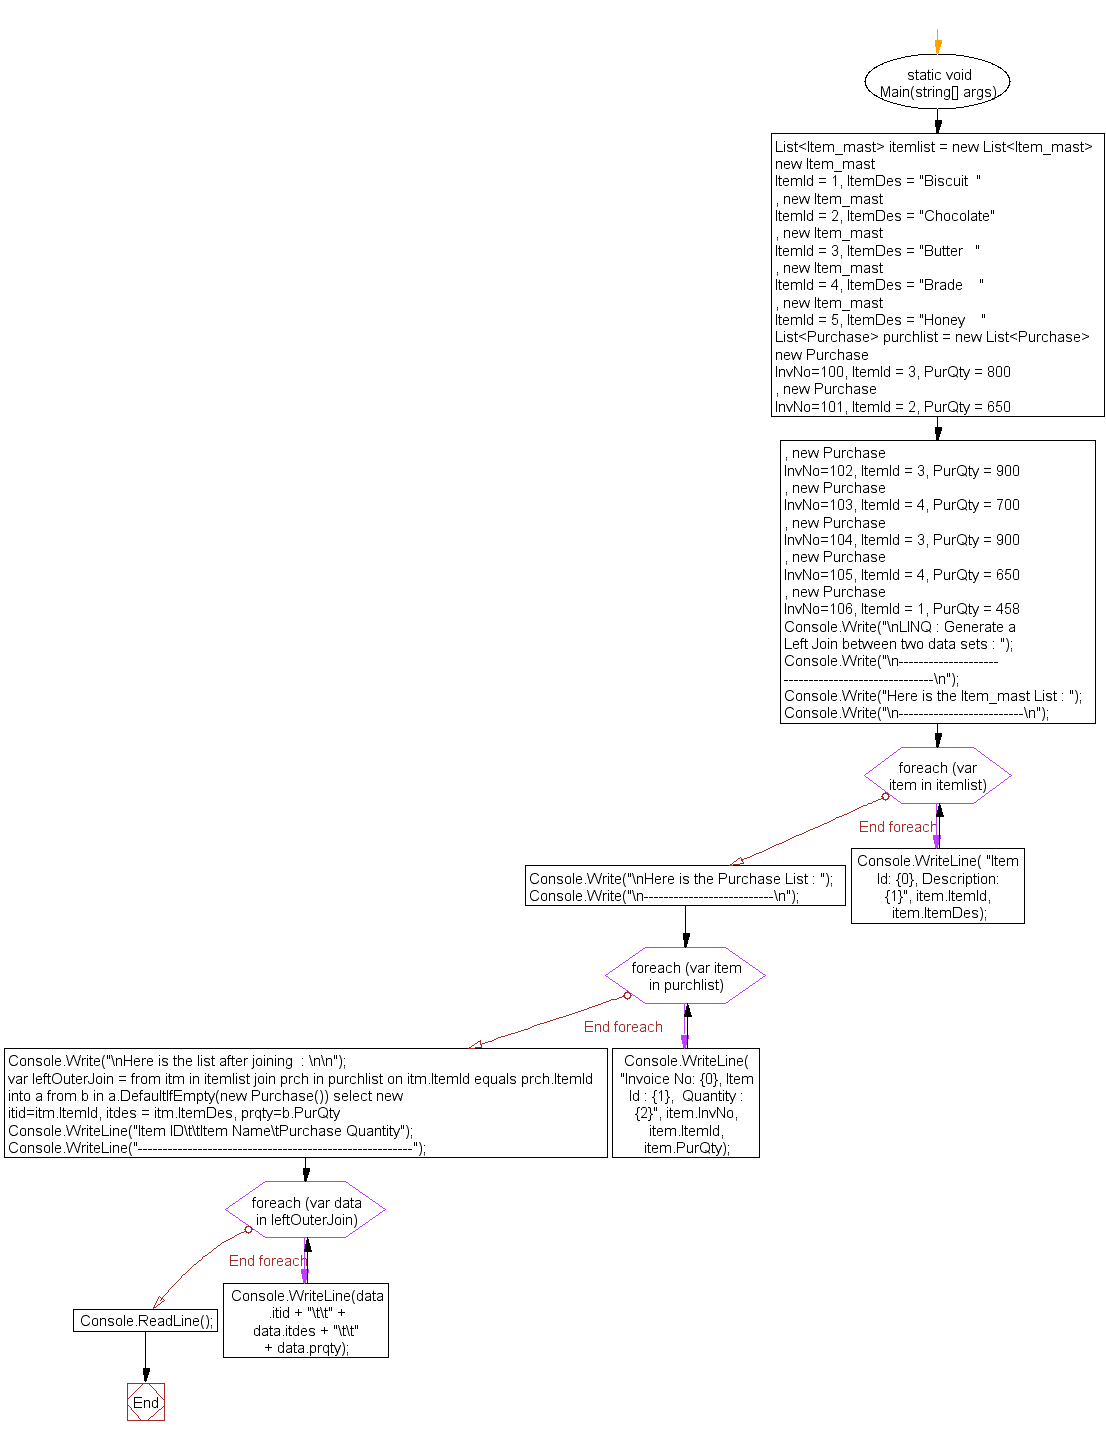 Flowchart: LINQ : Generate a Left Join between two data sets